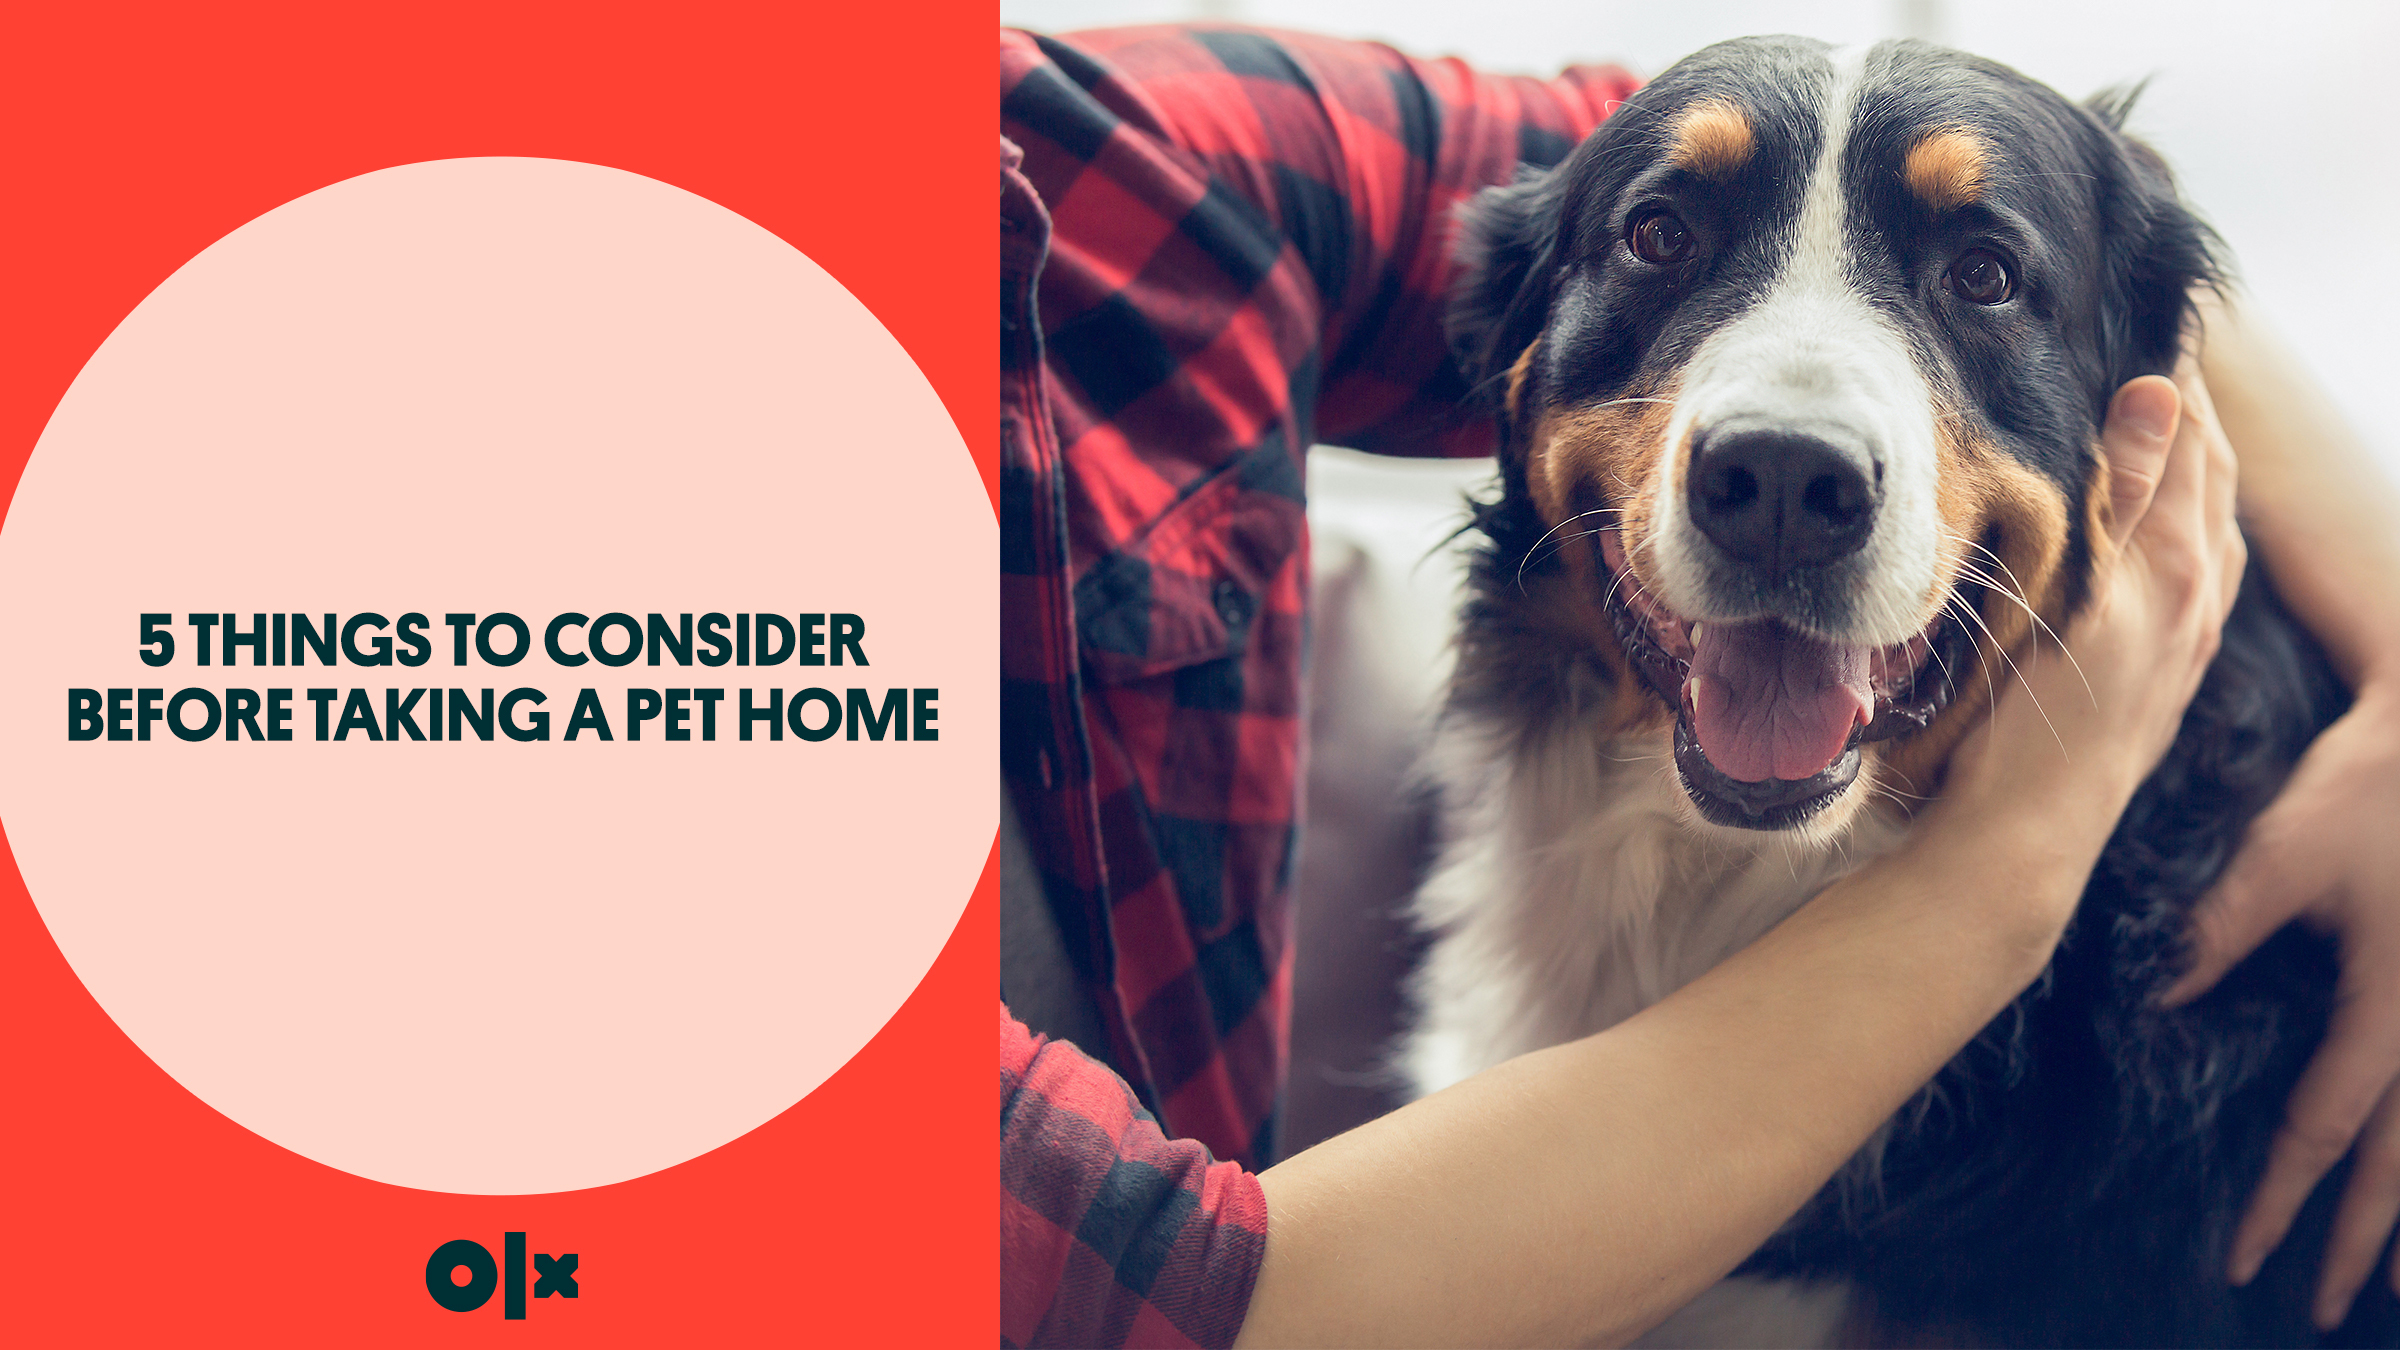 5 Things to Consider Before Taking a Pet Home